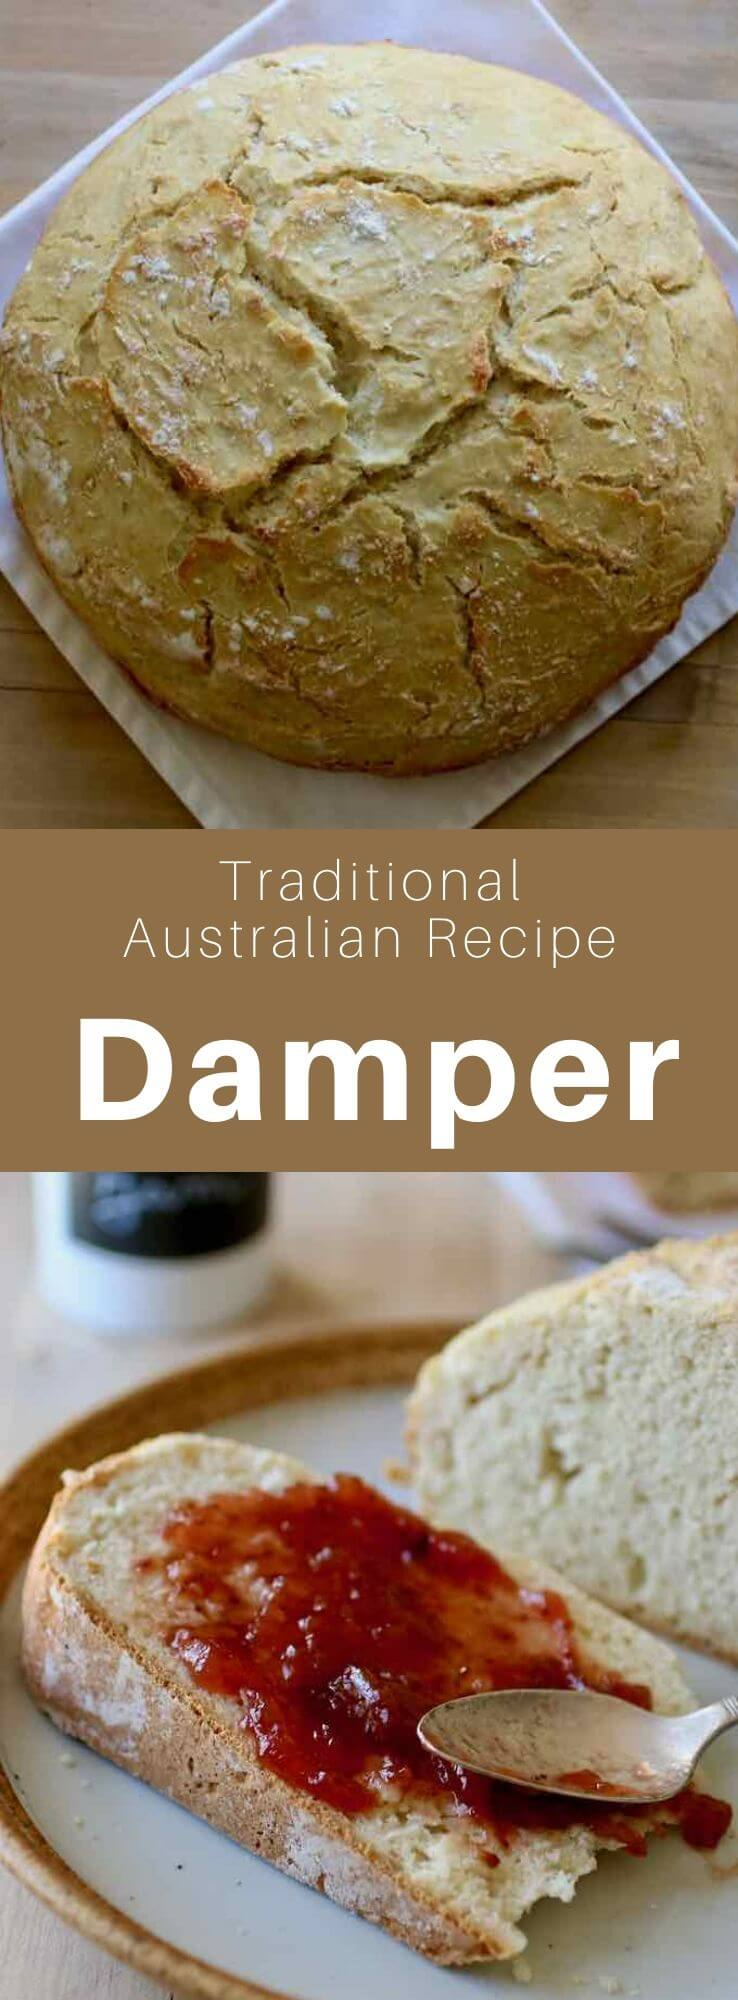 The damper or bush-bread is a delicious unleavened Australian bread traditionally baked on hot coals but which can also be baked in the oven. #Australia #WorldCuisine #196flavors